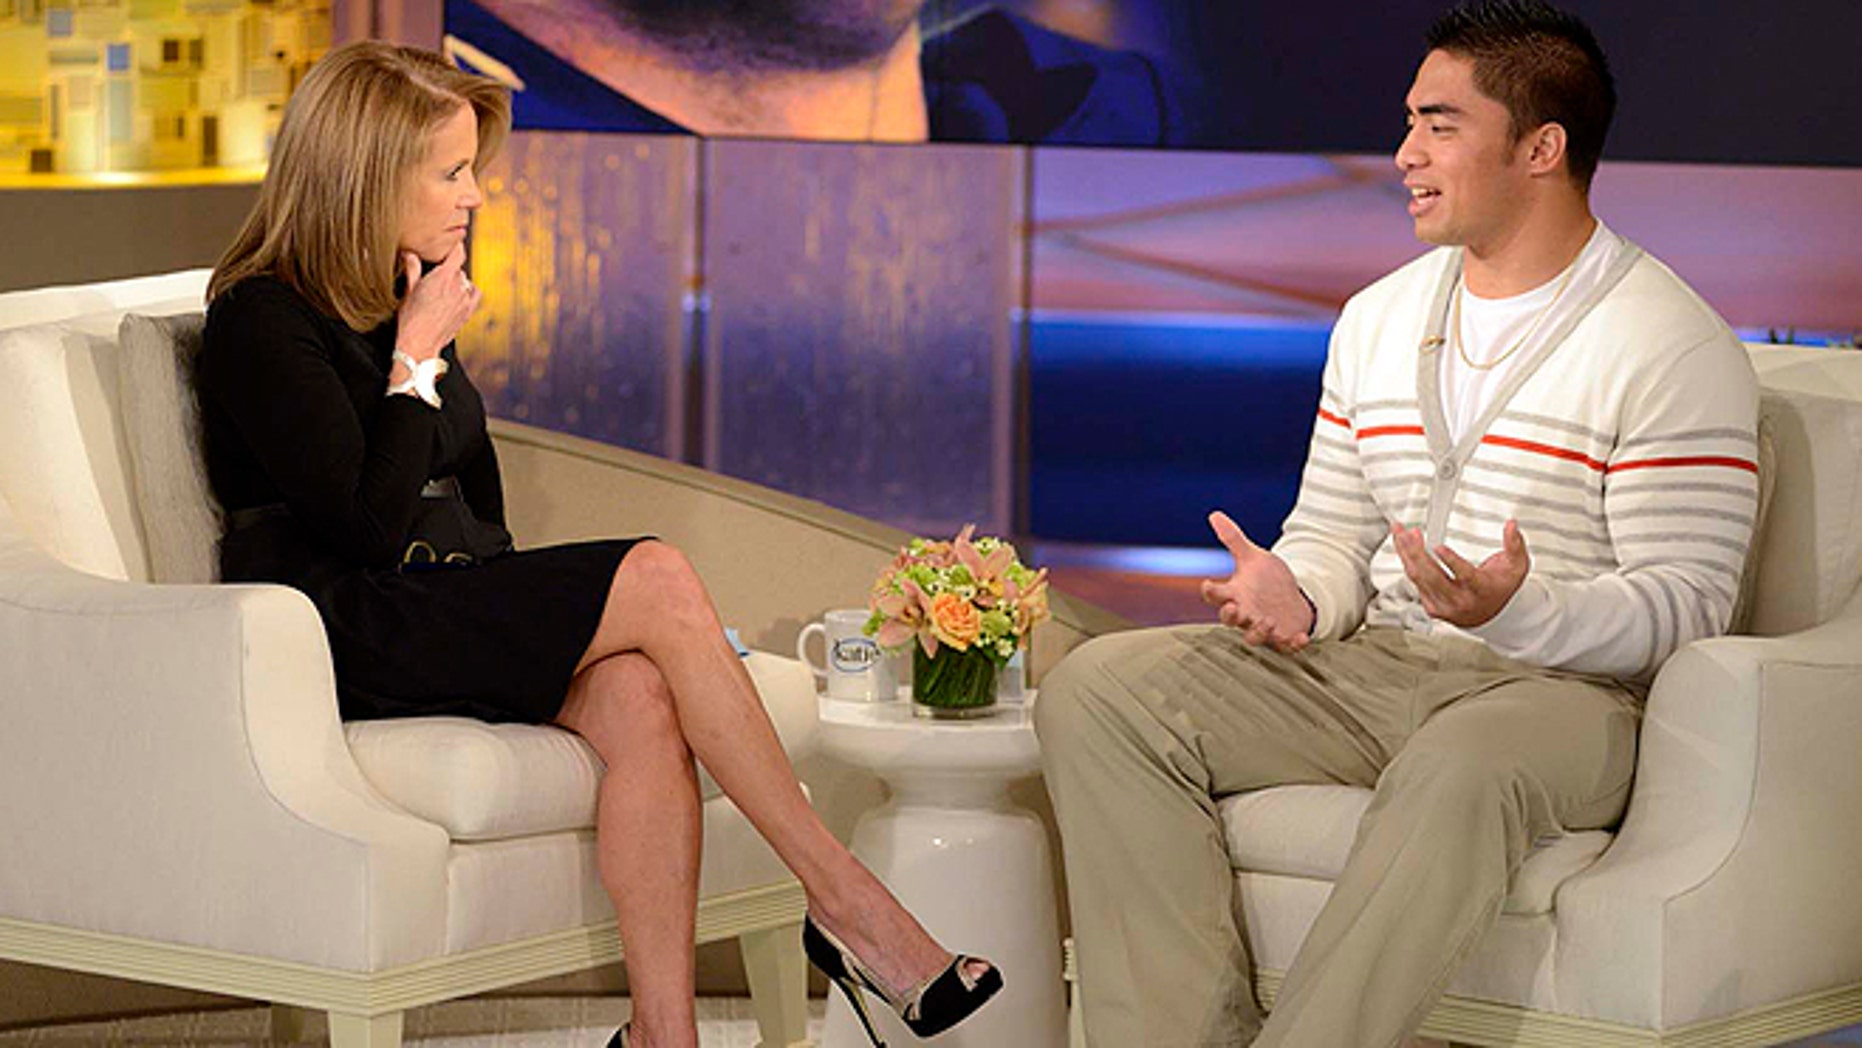 Jan. 22, 2013: Notre Dame linebacker Manti Te'o, right, speaking with host Katie Couric during an interview for 'Katie' in New York. Te'o told Couric he briefly lied about his online girlfriend after discovering she didn't exist, but maintained he had no part in creating the hoax. (AP/Disney-ABC)